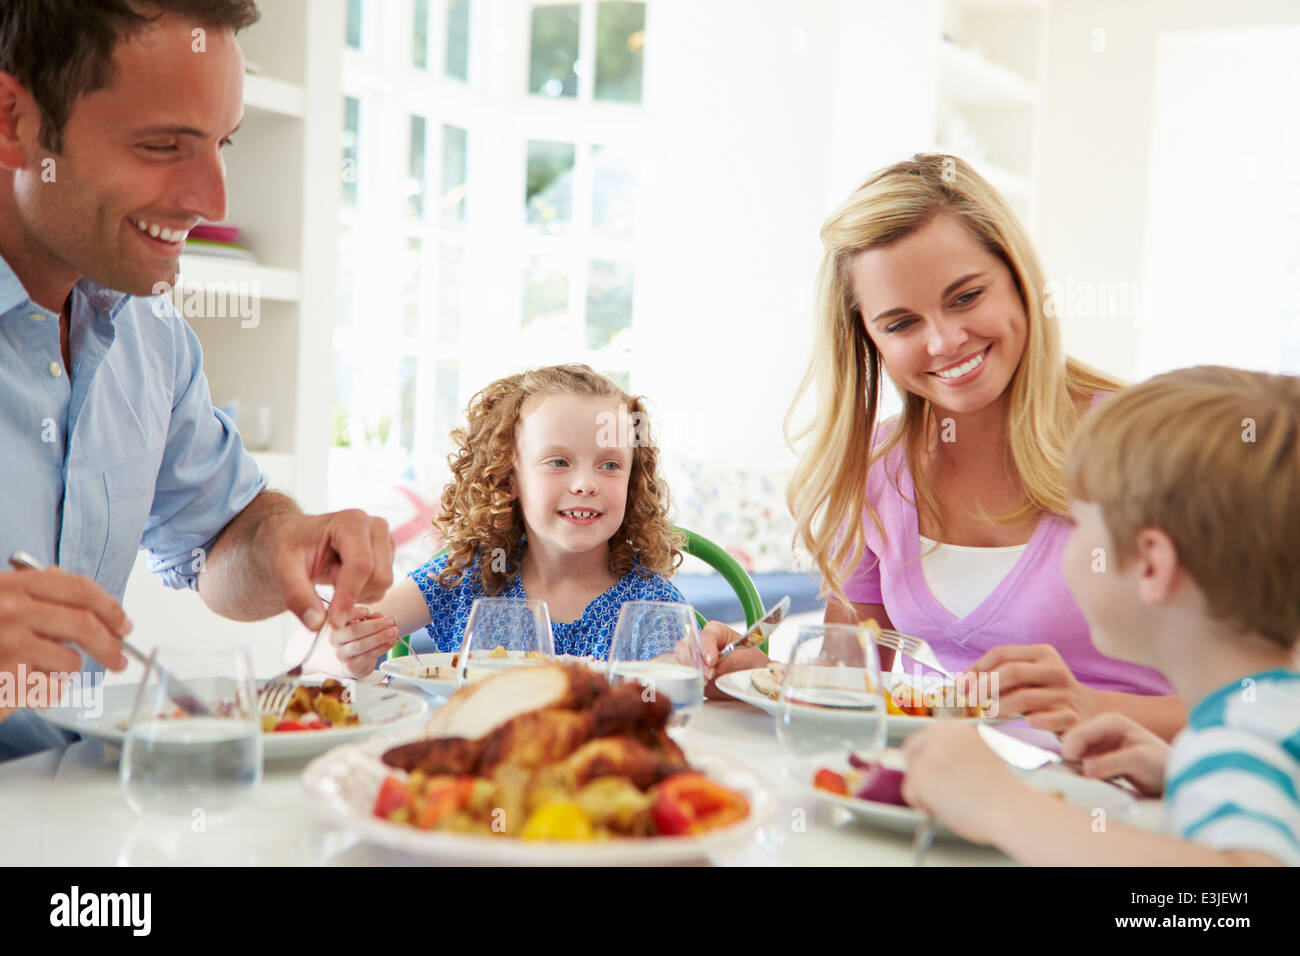 Family Eating Meal At Home Together - Stock Image